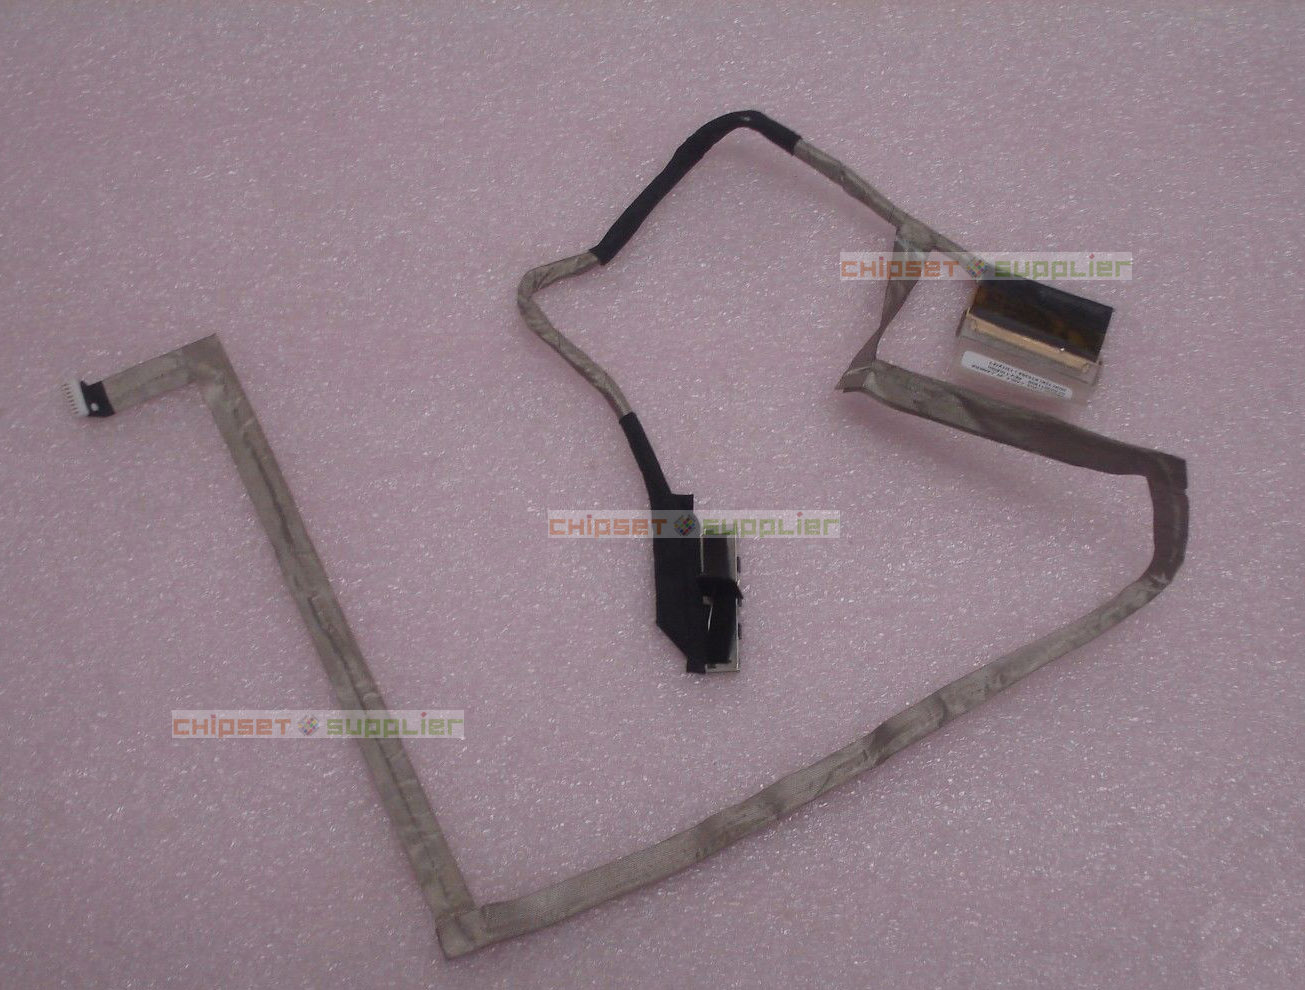 Laptop LCD cable DC02001T900 0R7YCF fit for Dell Latitude E5440 VAW30 series